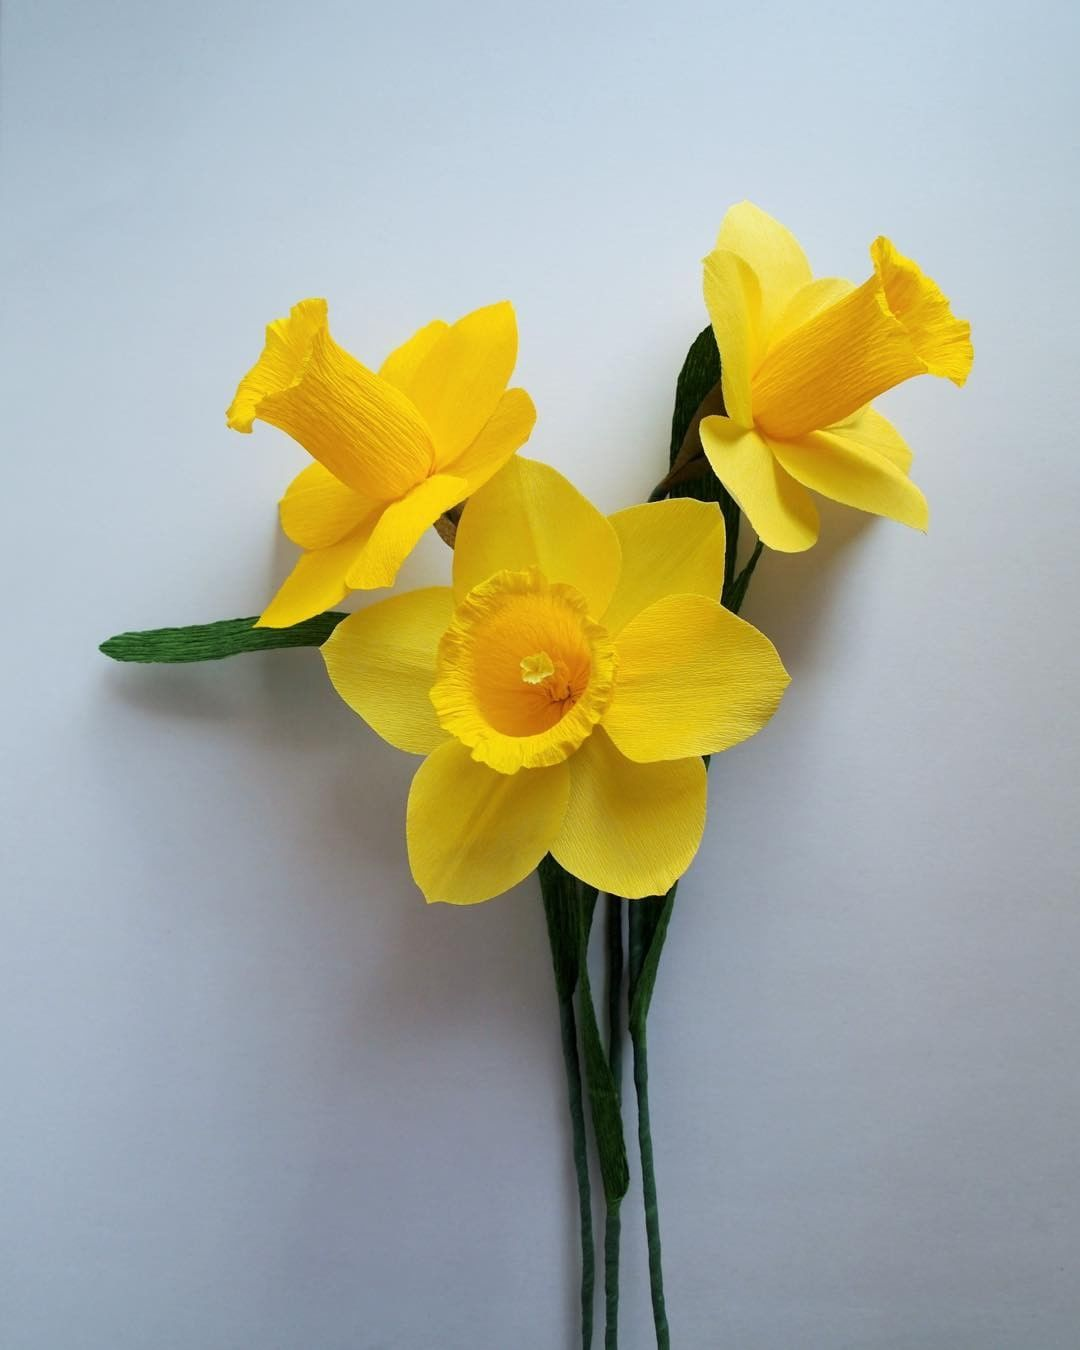 Daffodils are my favorite flowers